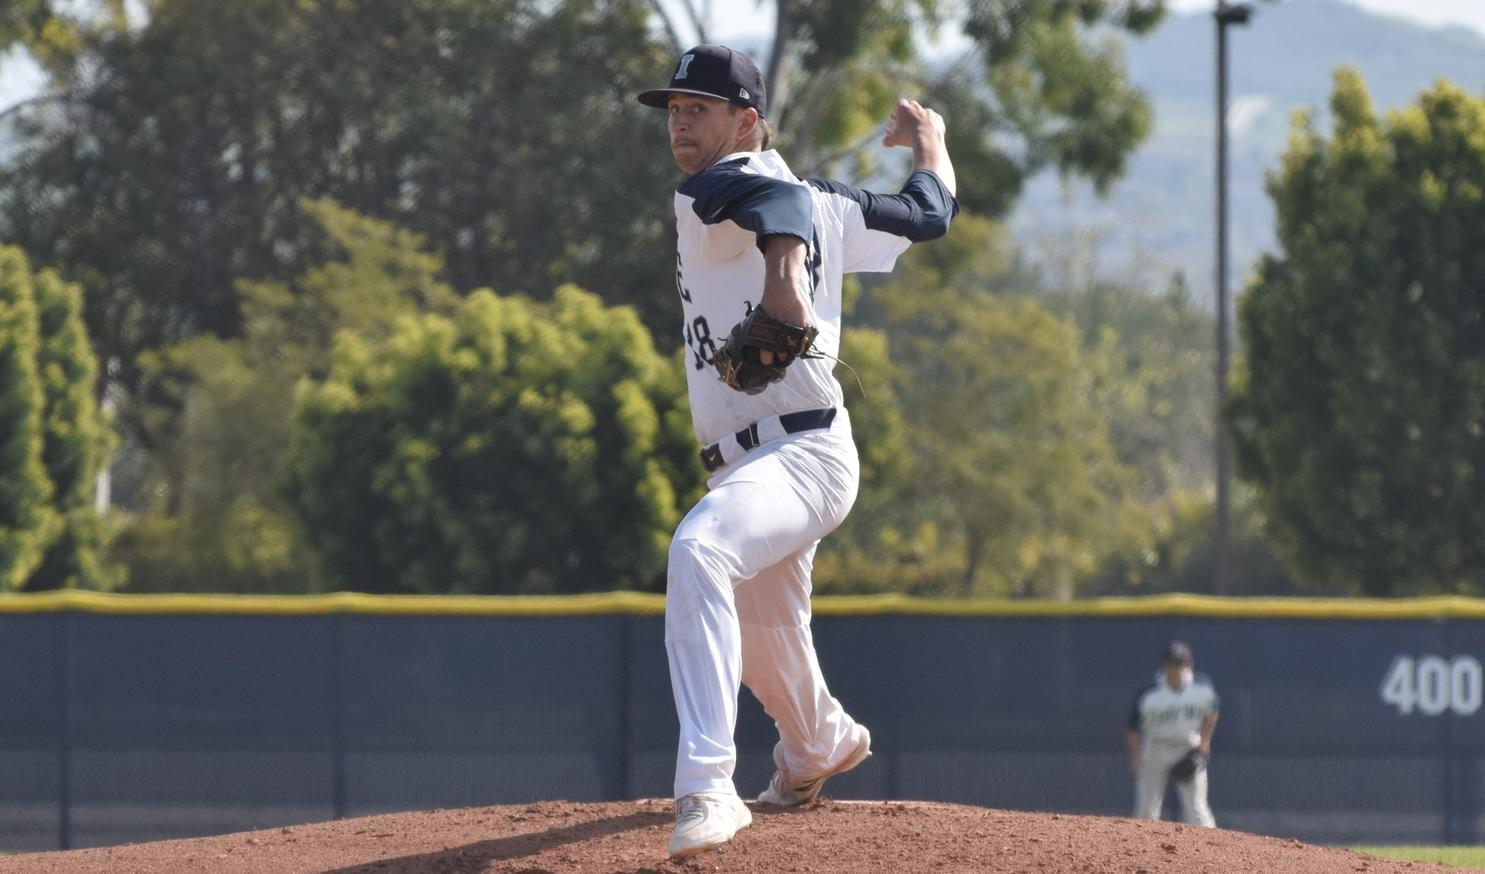 Dunham pitches another gem as baseball team shuts out East LA